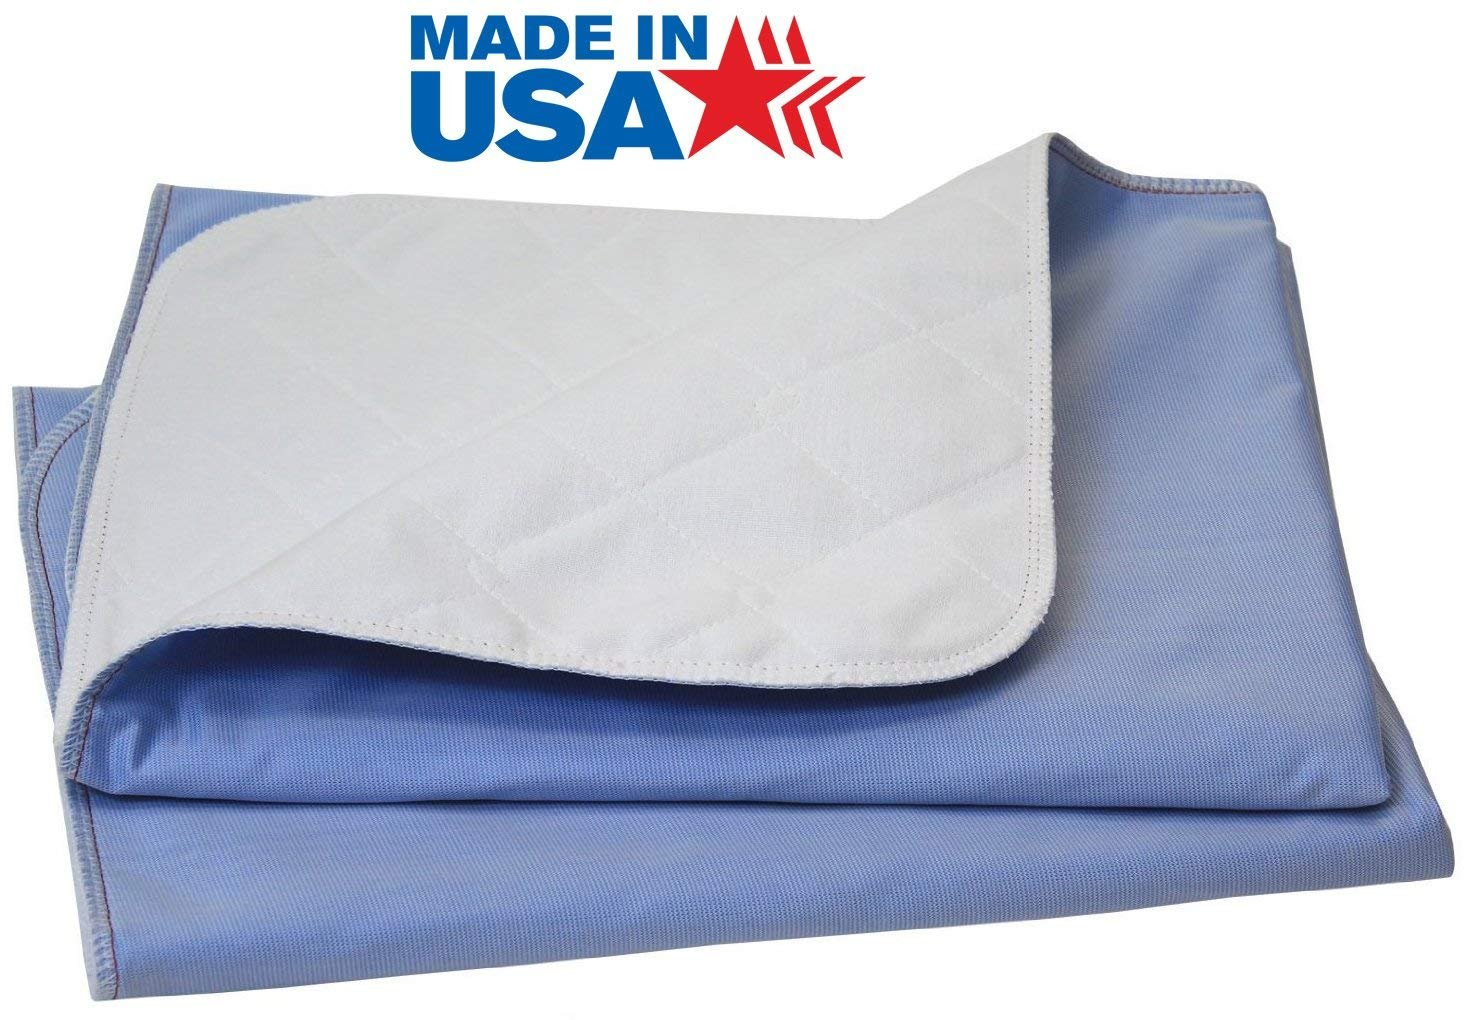 80 x 36 inches Big Size Washable Bed Pad / 3XL Incontinence Underpad - Mattress Protector - Blue